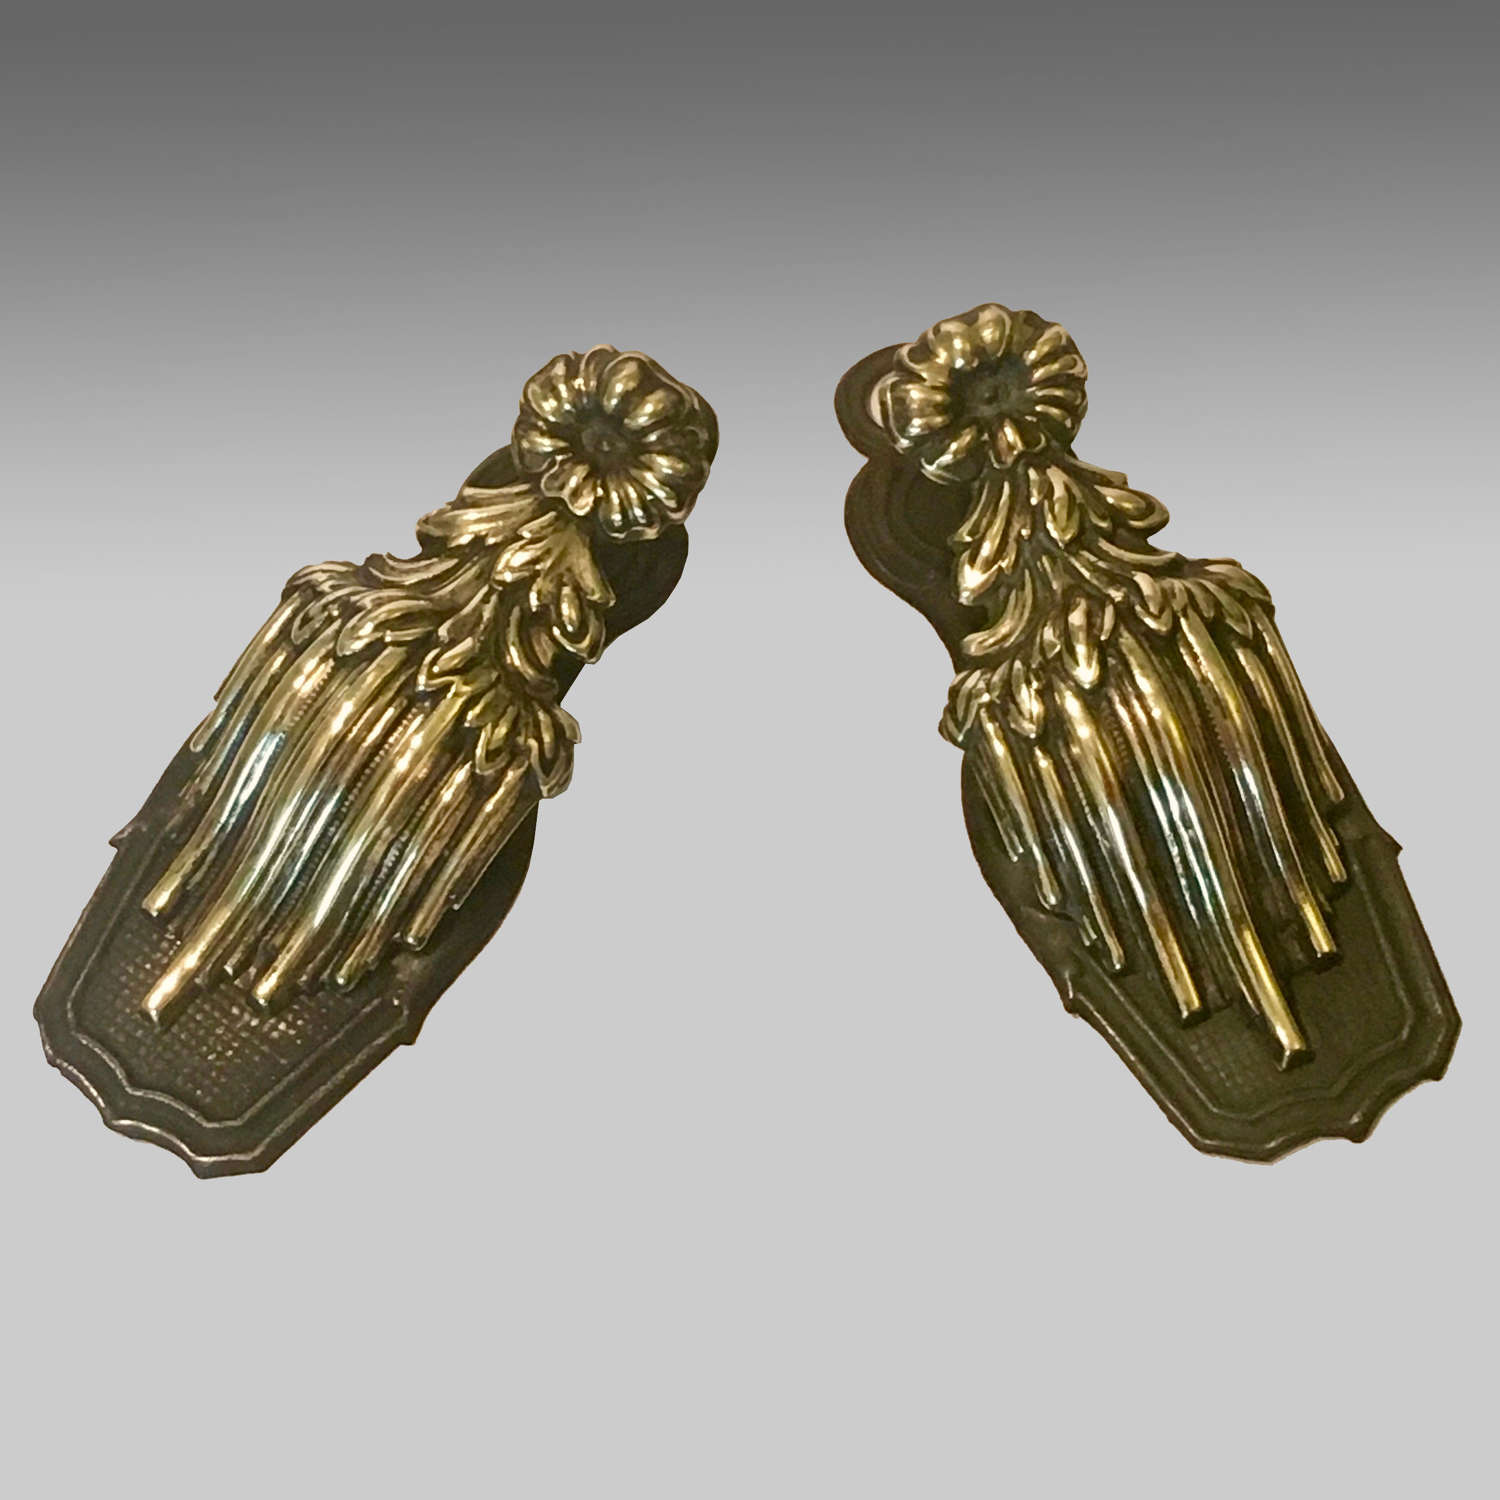 Pair of antique brass repoussé stationery clips